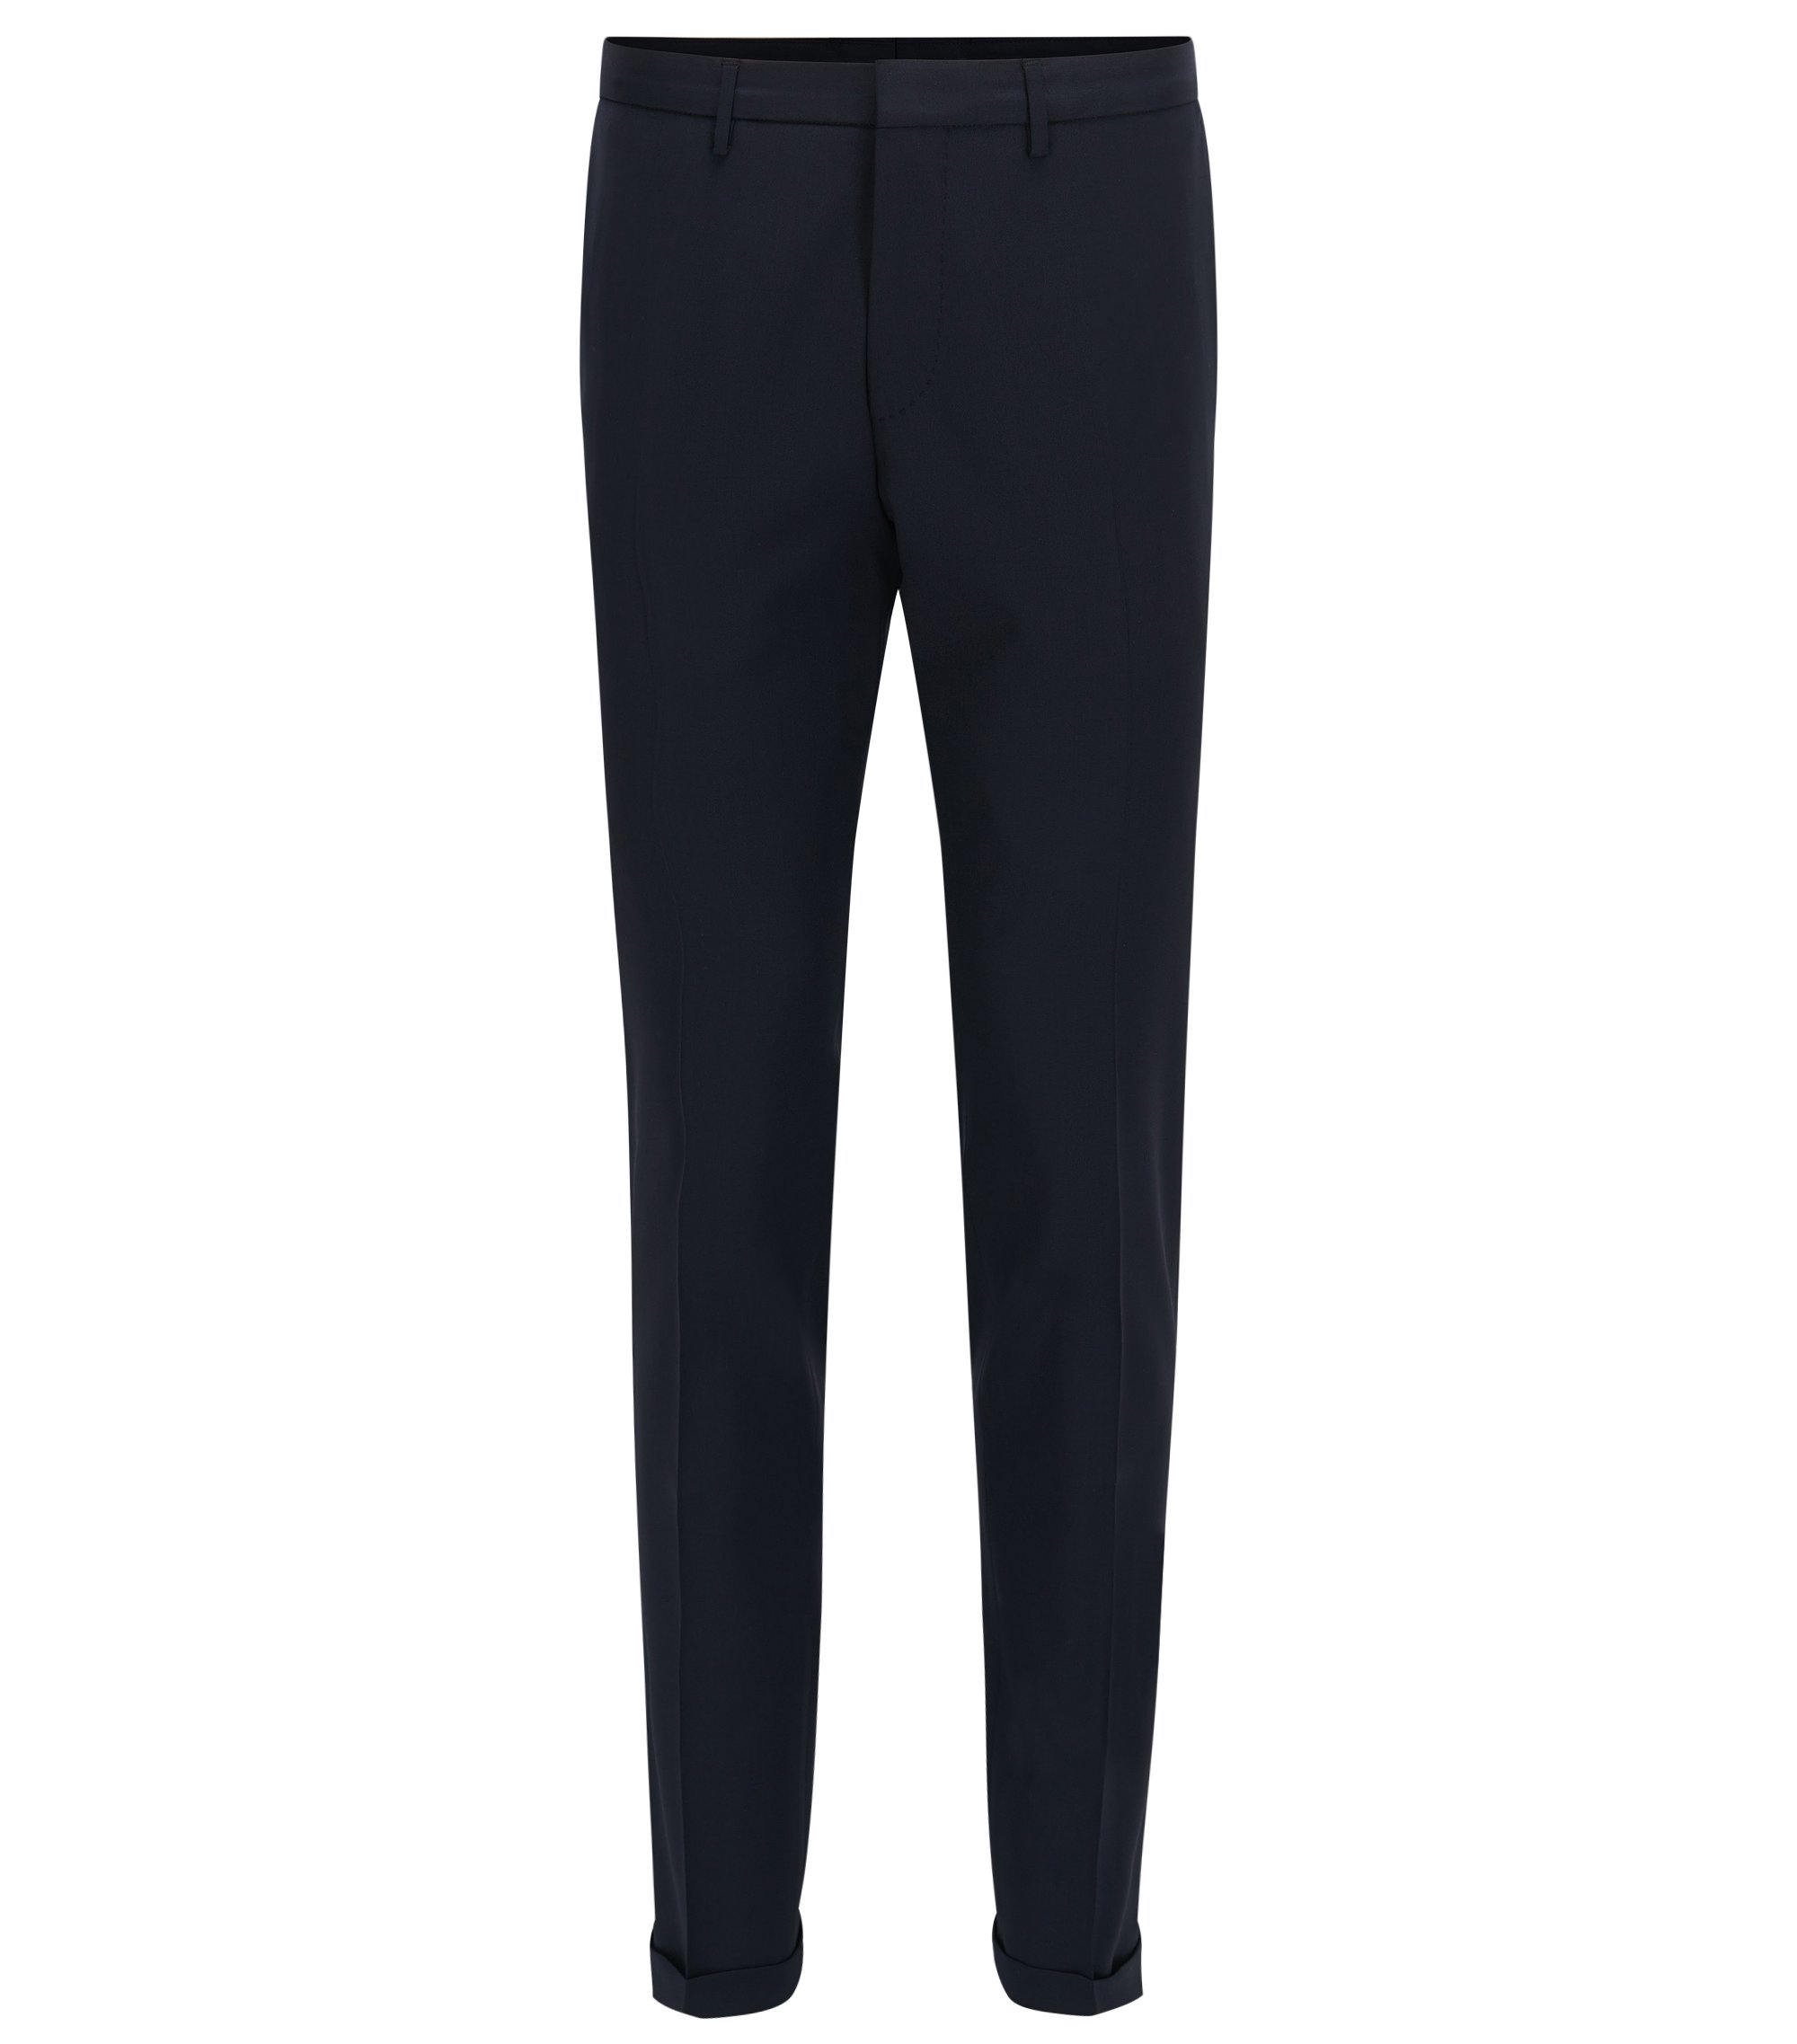 Virgin Wool Dress Pant, Extra Slim Fit | Wave CYL, Dark Blue